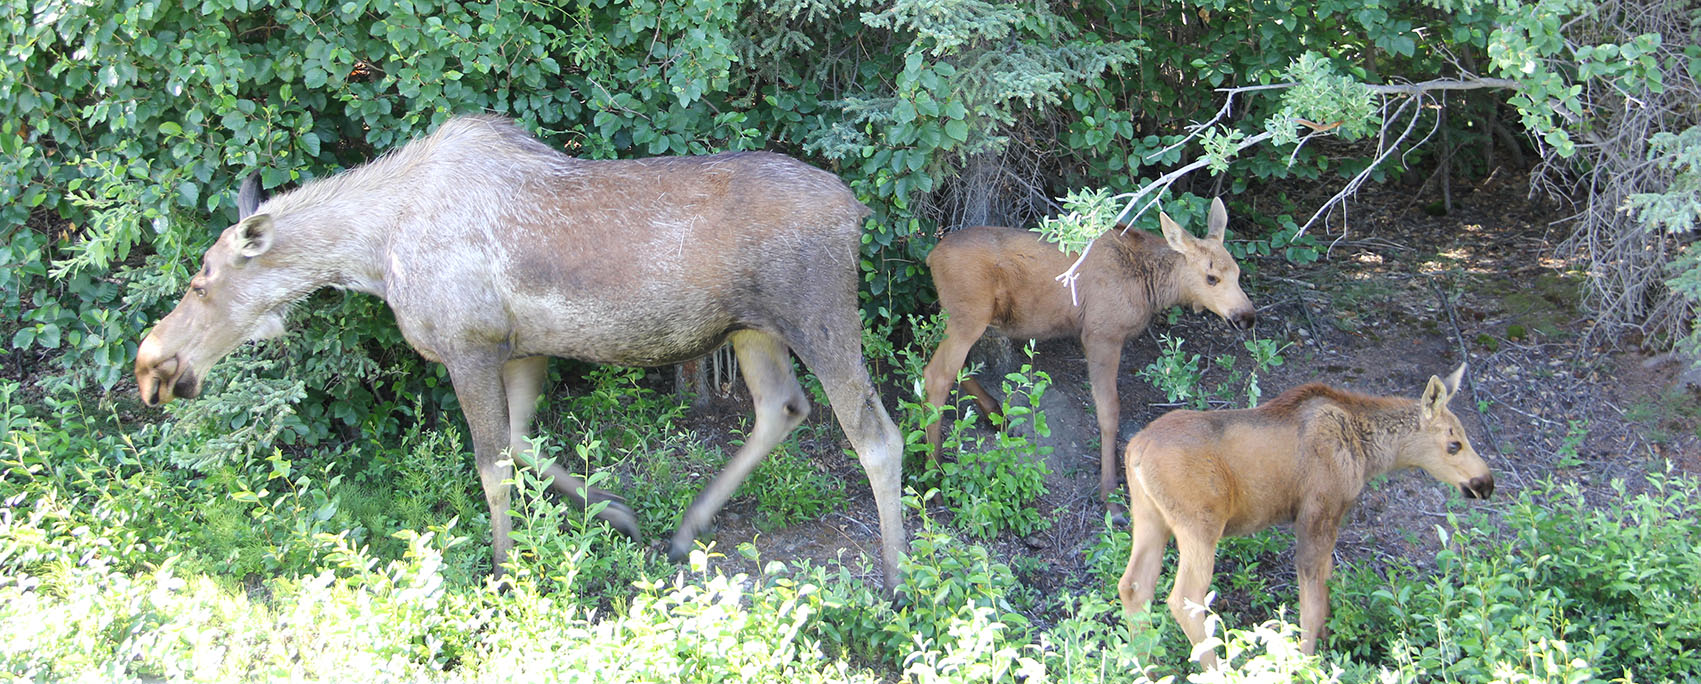 Mummy moose and her babies, less than two months old.